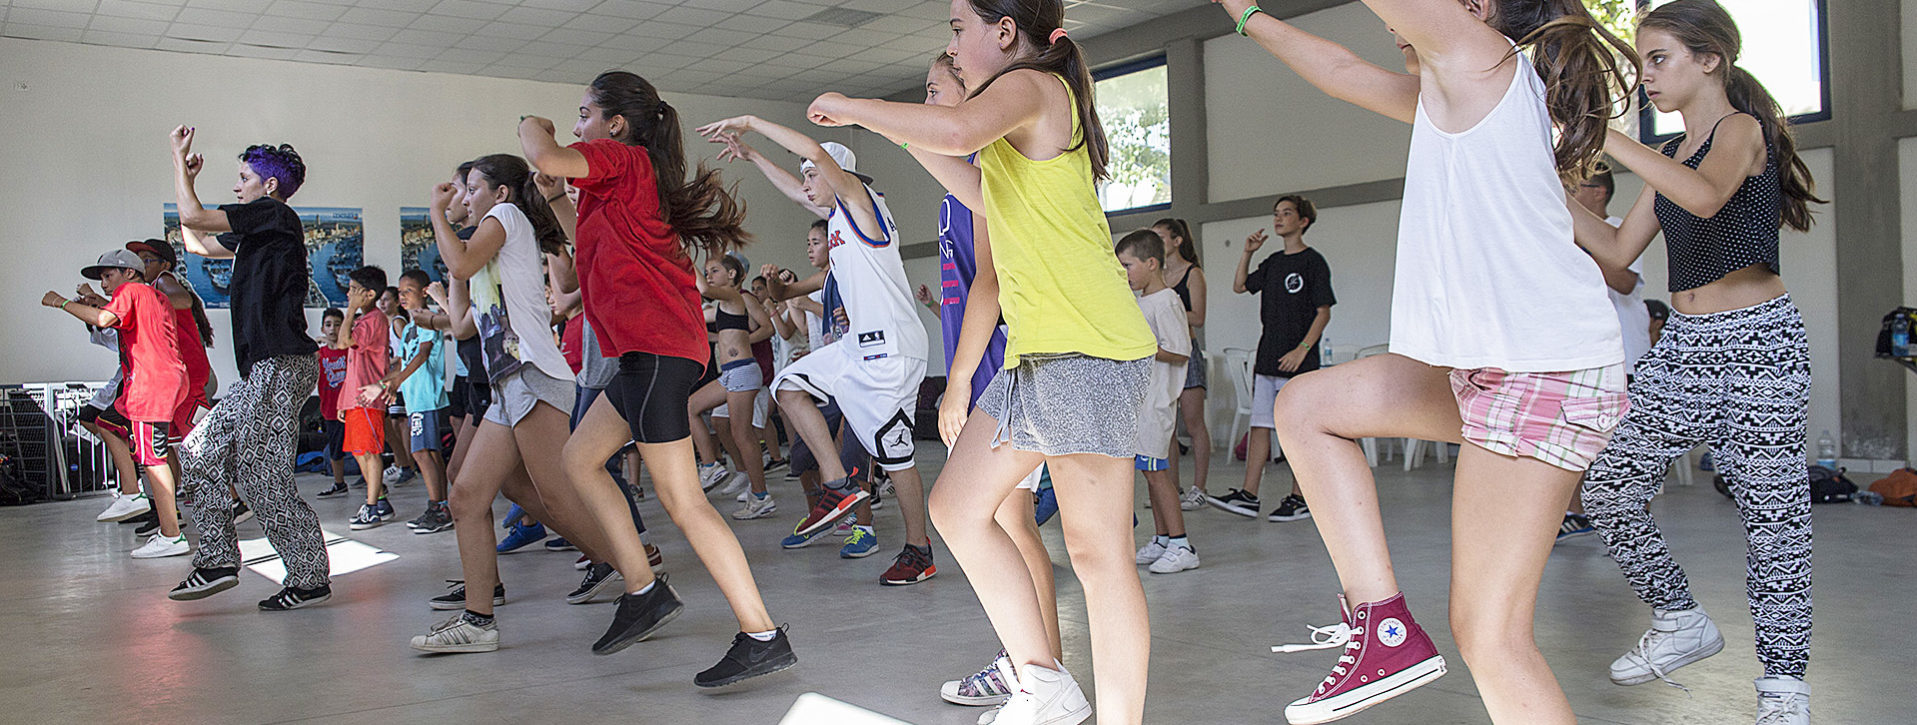 The Week Street Dance Summer Camp Cesenatico Italy Workshop Stage Hip Hop Festival